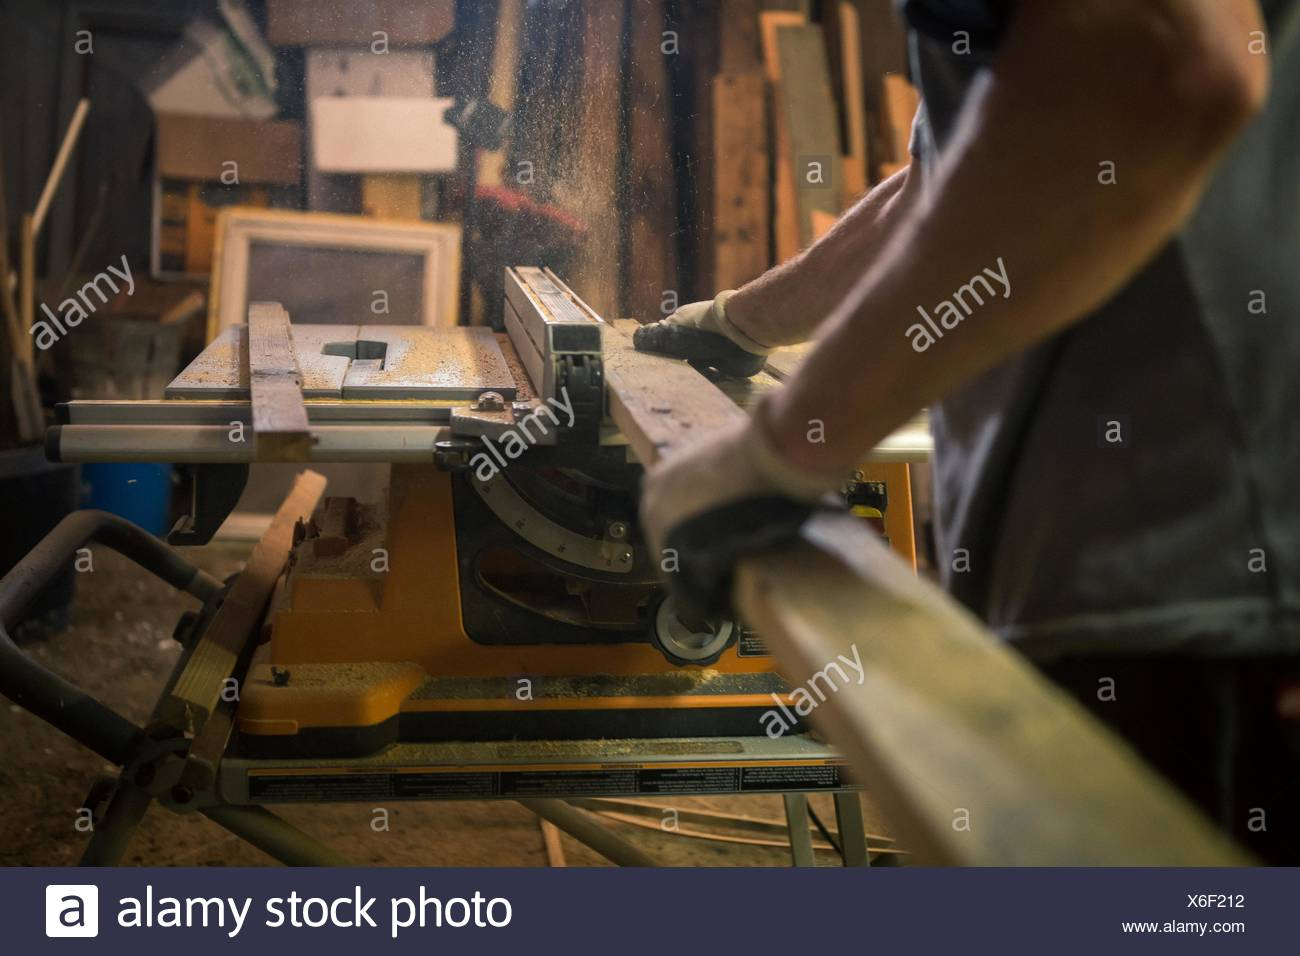 Wood artist in workshop, using woodworking machinery, mid section - Stock Image